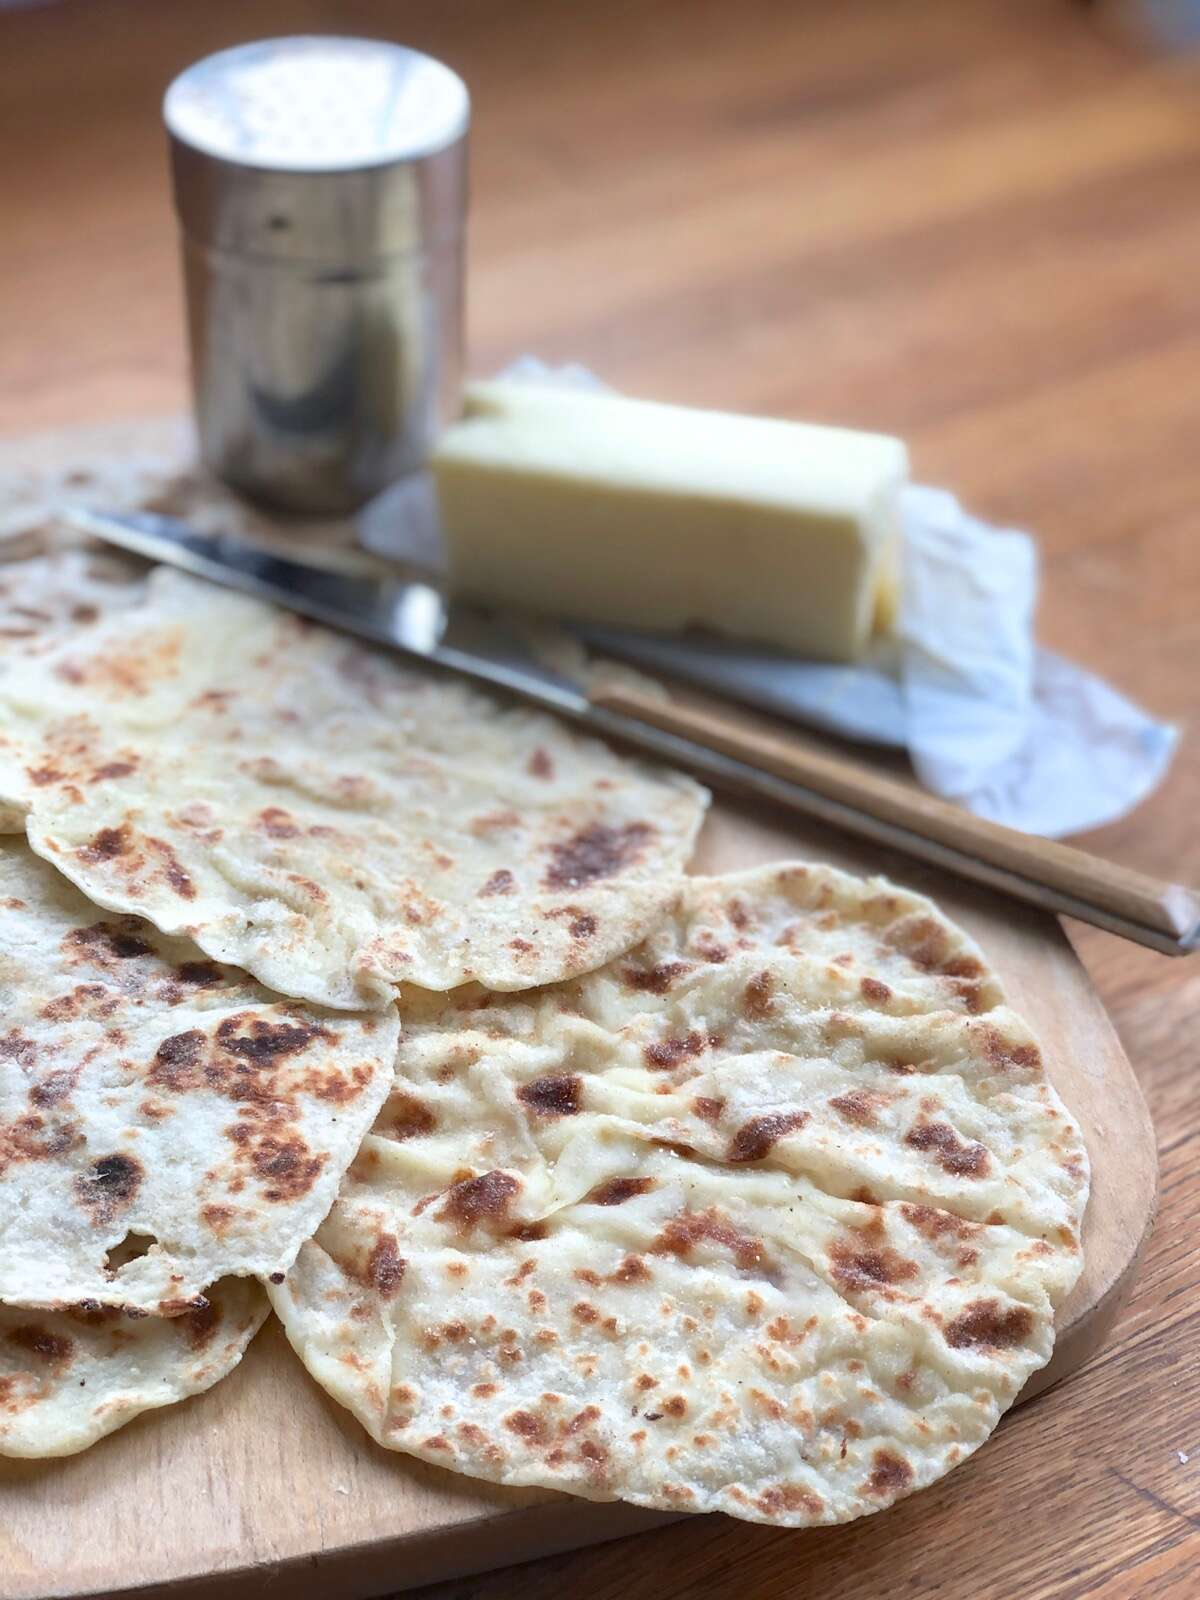 Cooked lefse fanned out on a cutting board, butter and cinnamon sugar in the background.